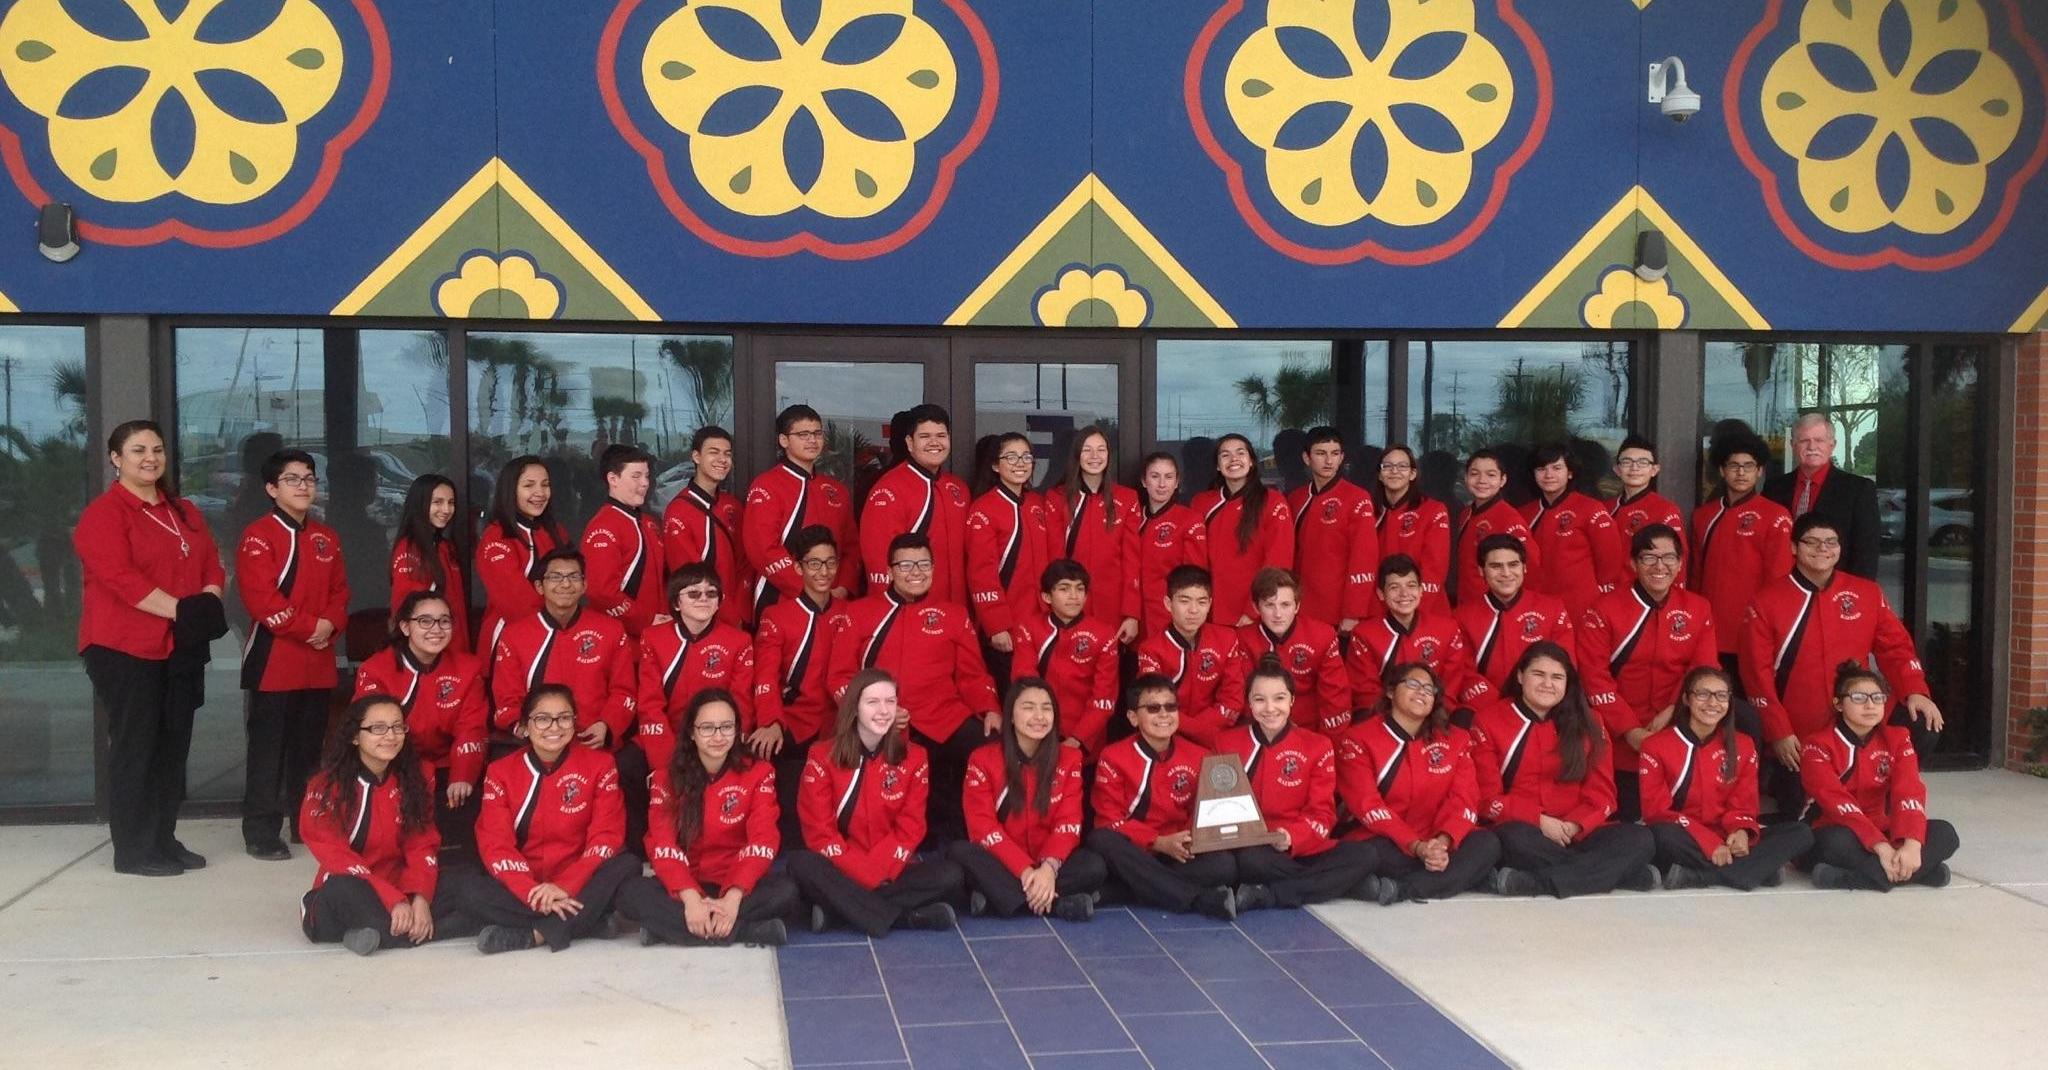 Memorial MS Band achieves 19 years of UIL Sweepstakes